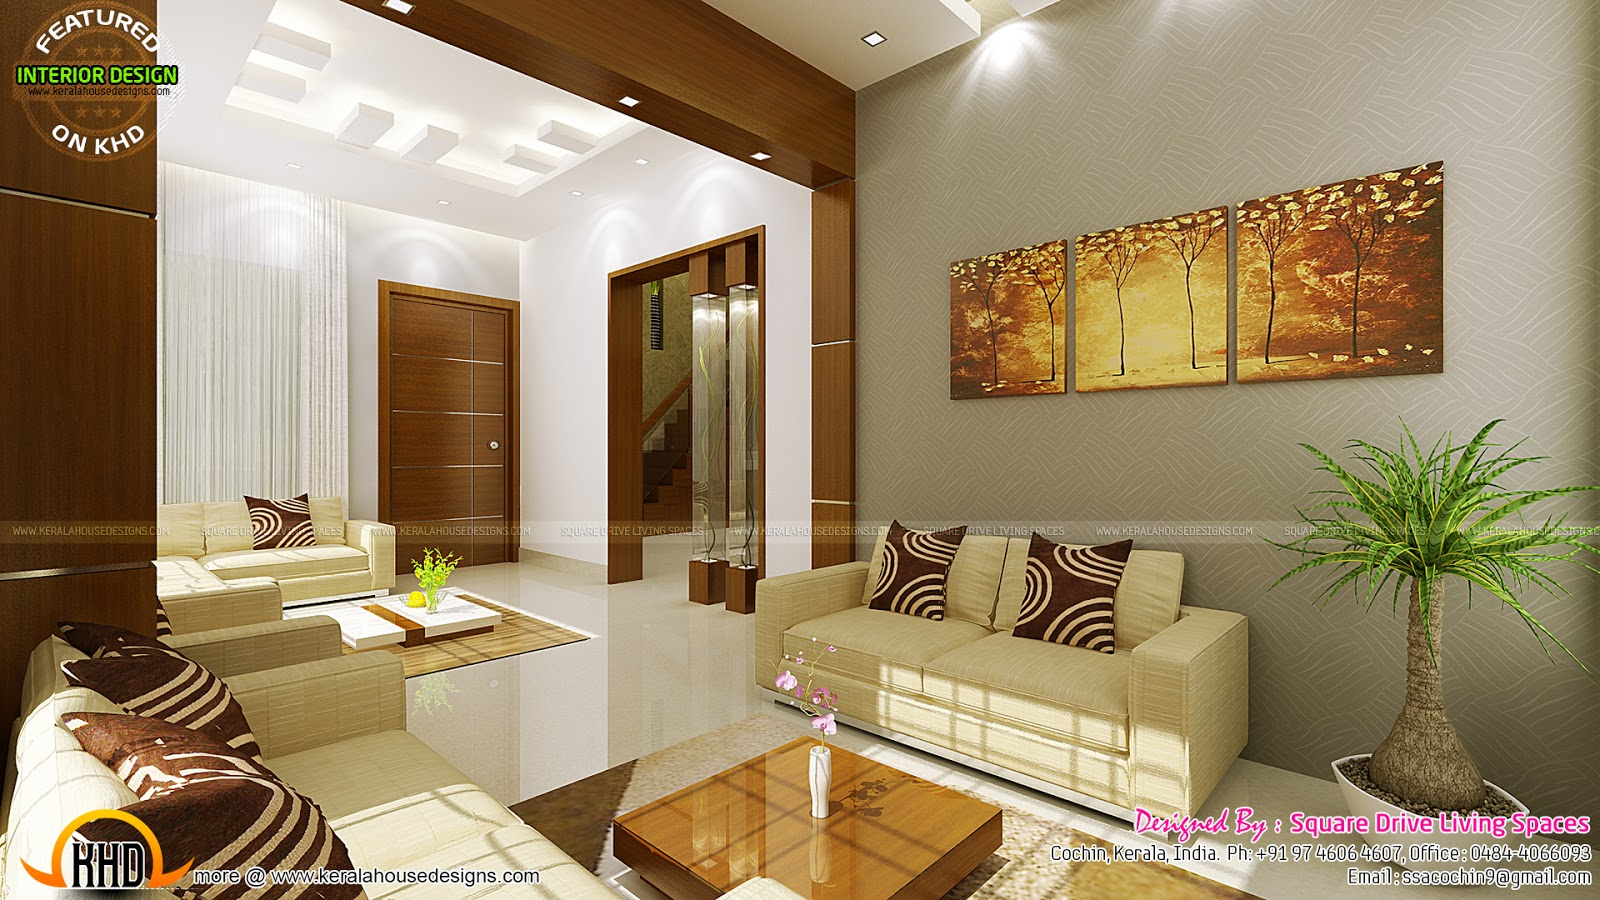 Contemporary kitchen dining and living room kerala home for Home inner design